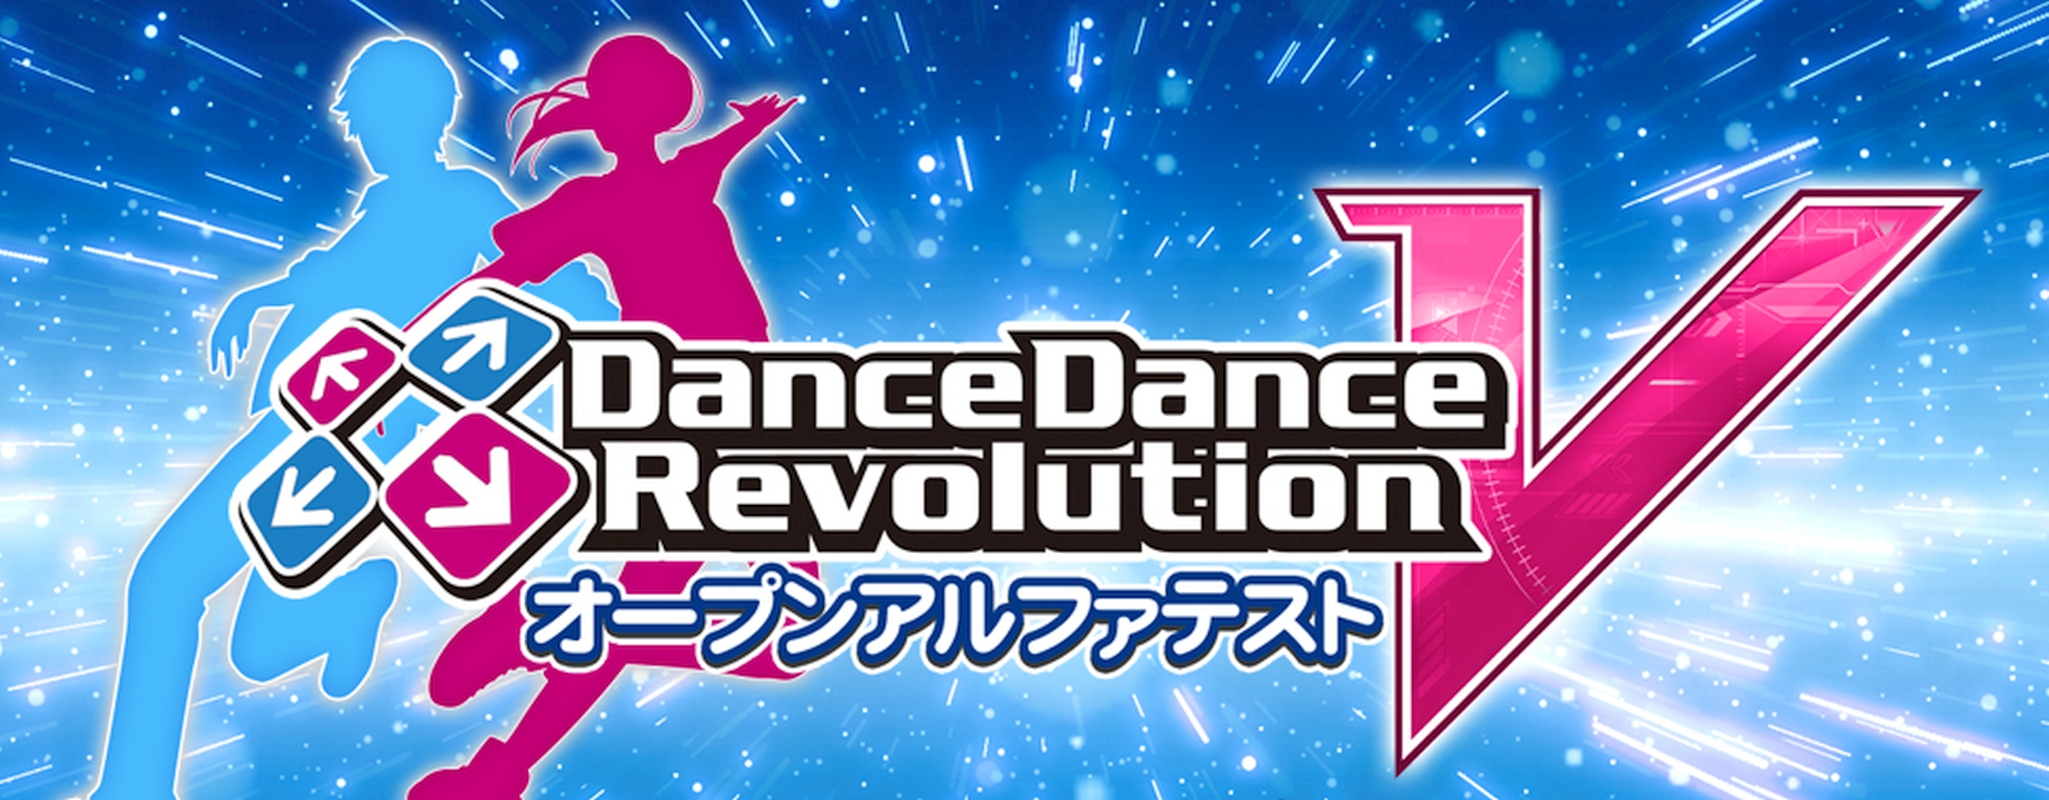 Dance Dance Revolution 5 Headed For PC With Japanese Open Alpha Available Now